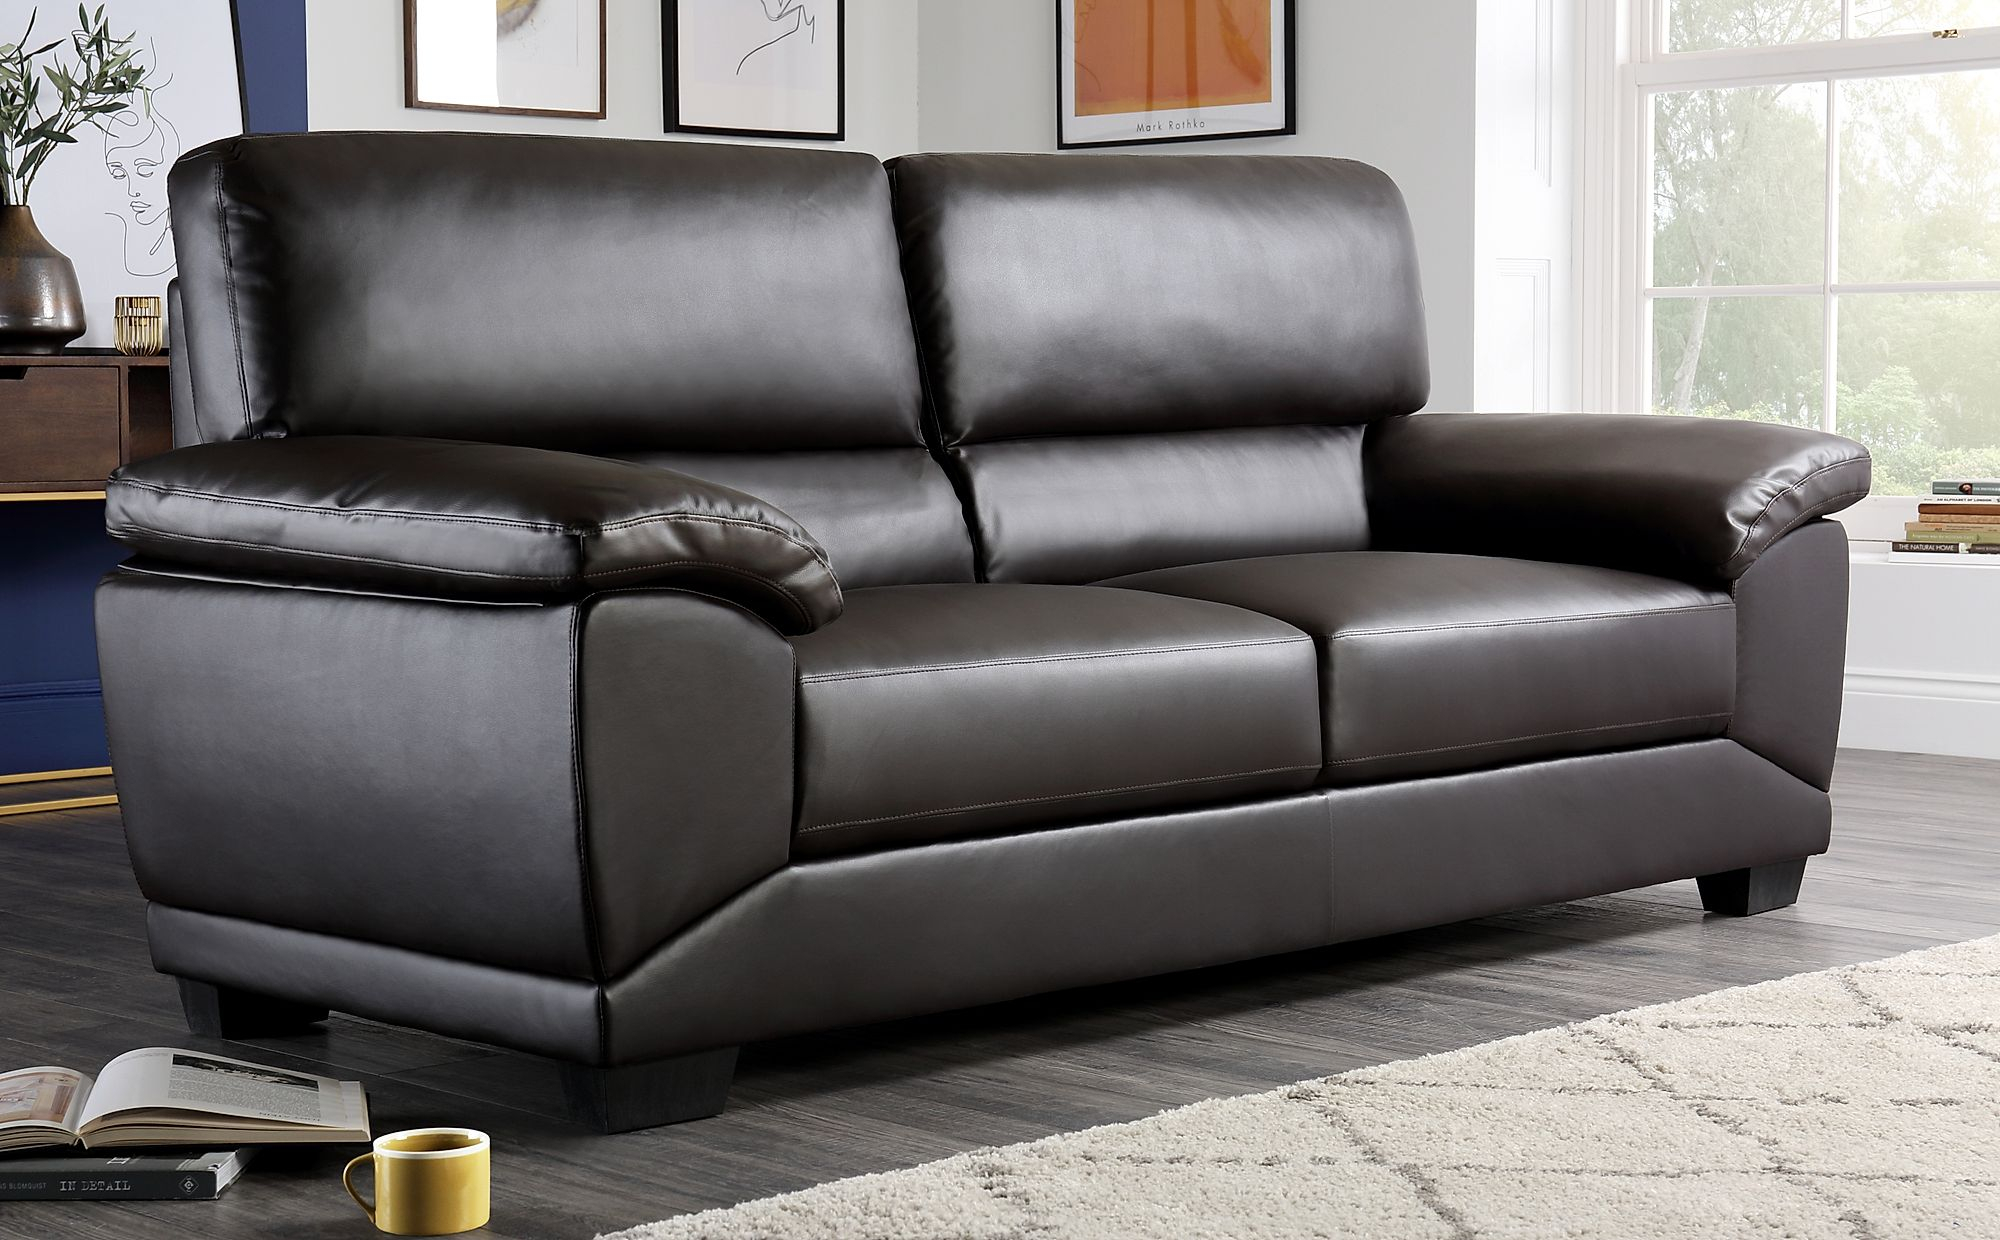 Oregon Brown Leather 3 Seater Sofa | Furniture Choice Within 3 Seater Leather Sofas (View 1 of 15)